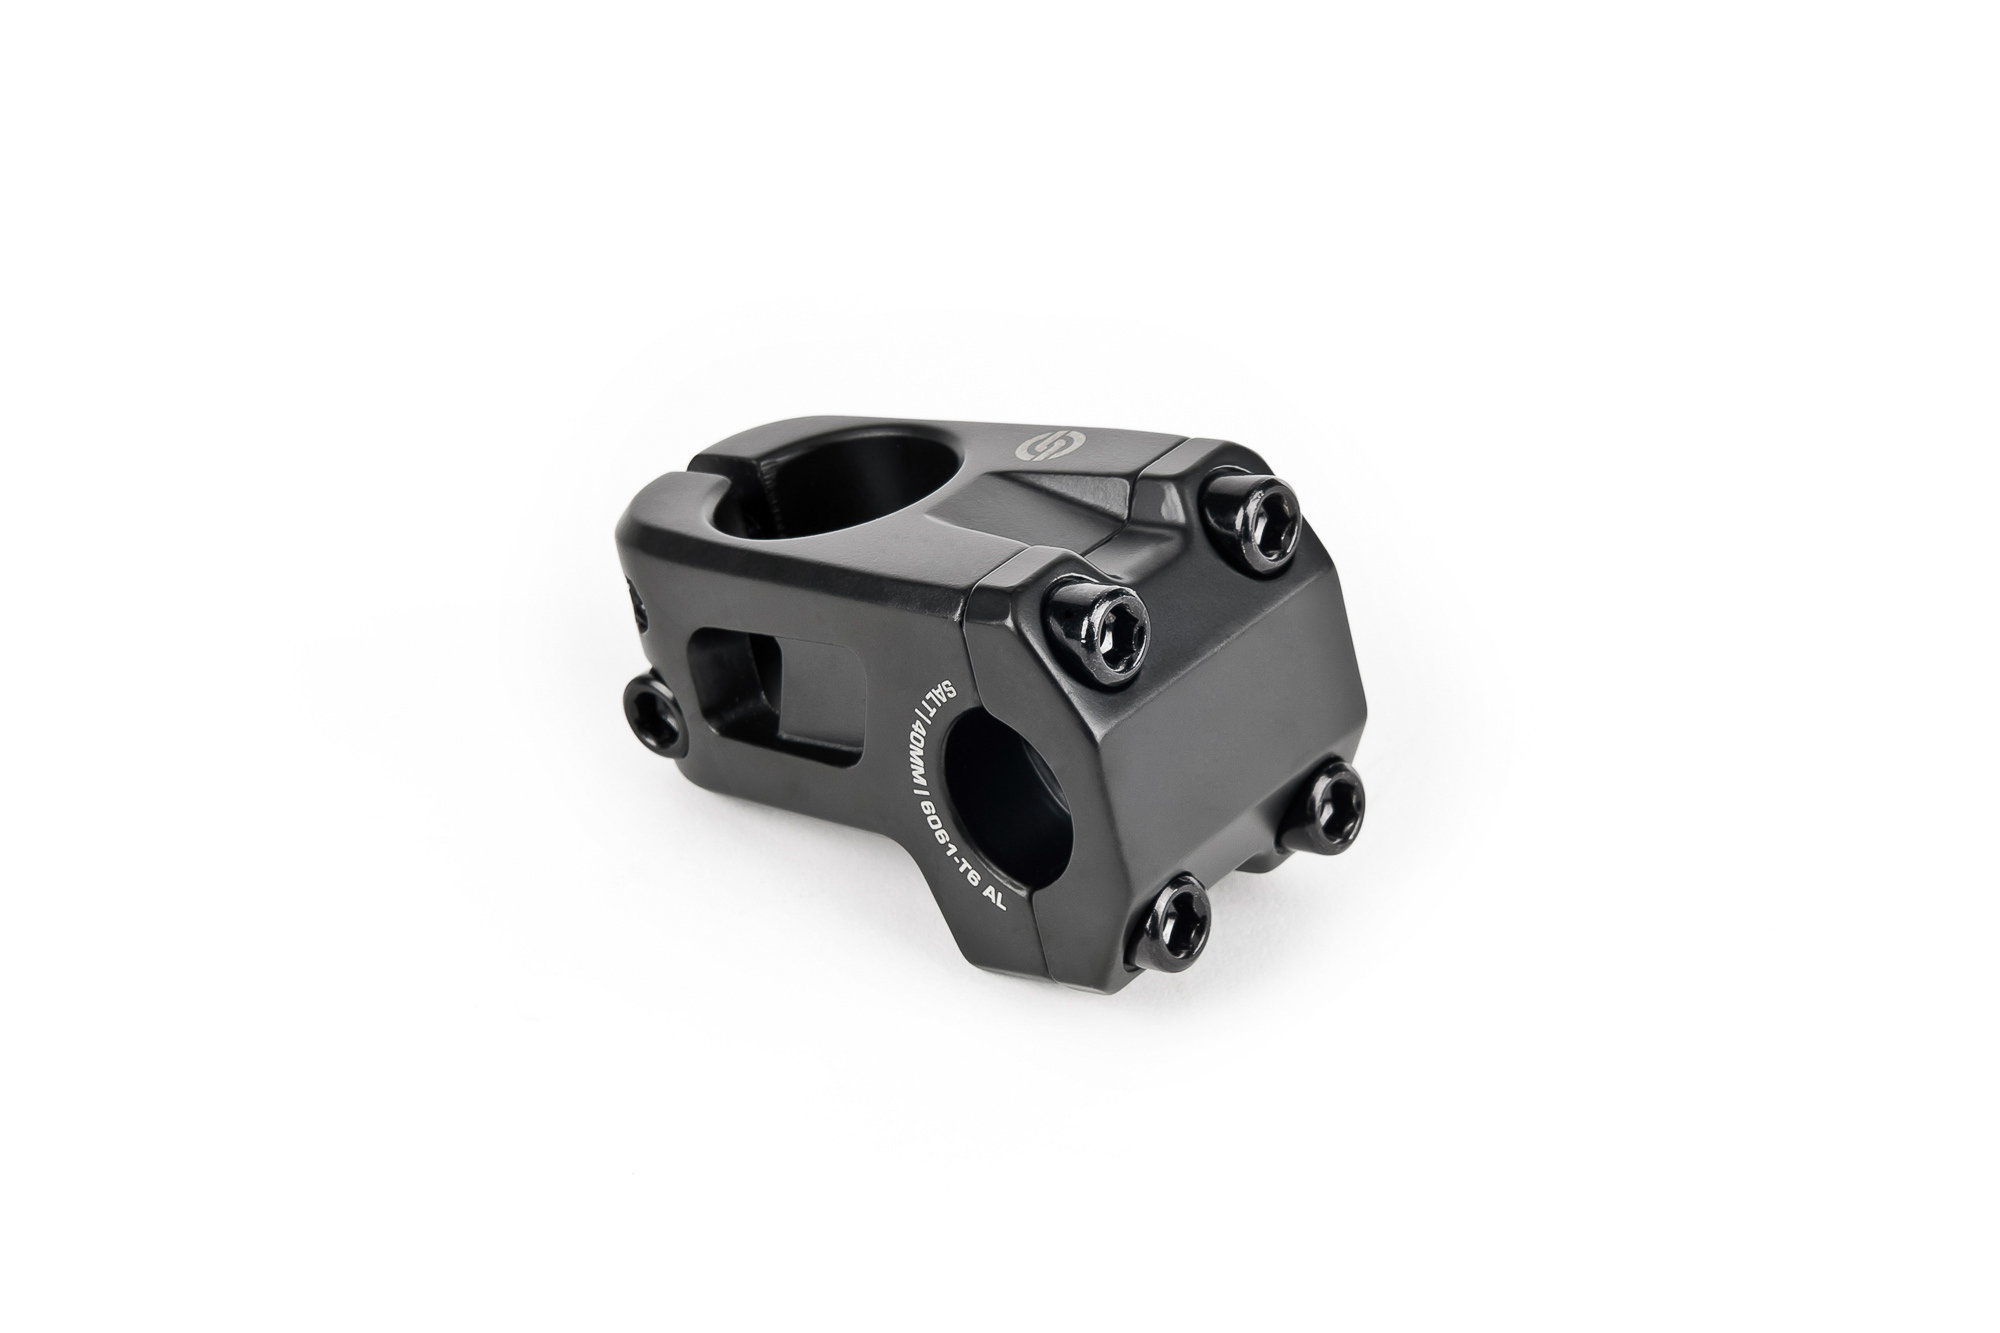 Salt_Junior_frontloader_stem_black_01